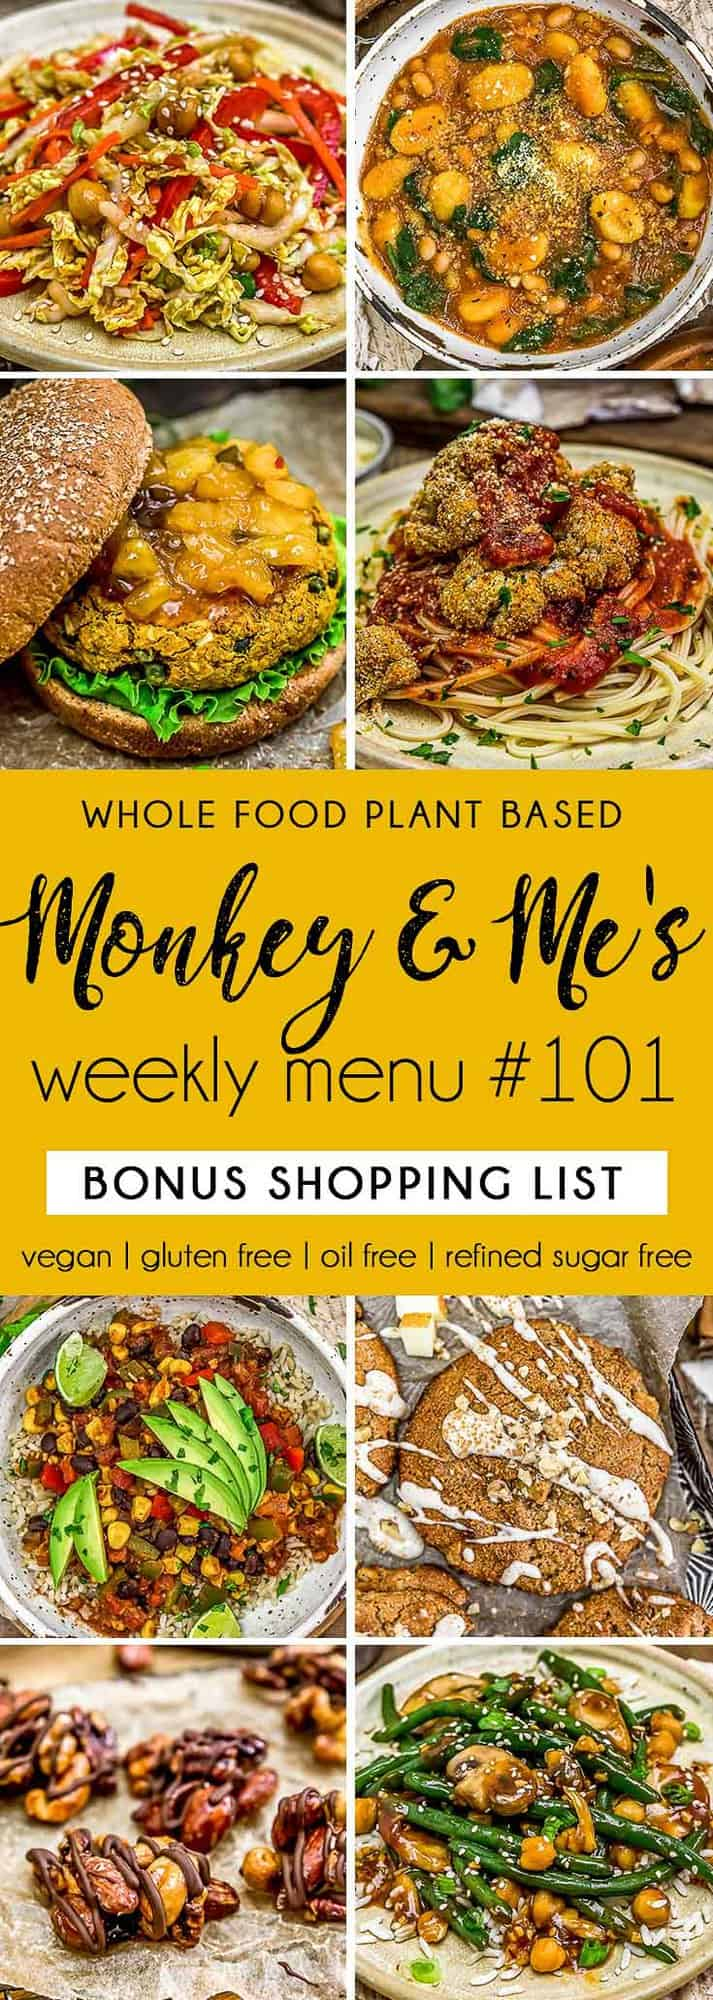 Monkey and Me's Menu 101 featuring 8 recipes